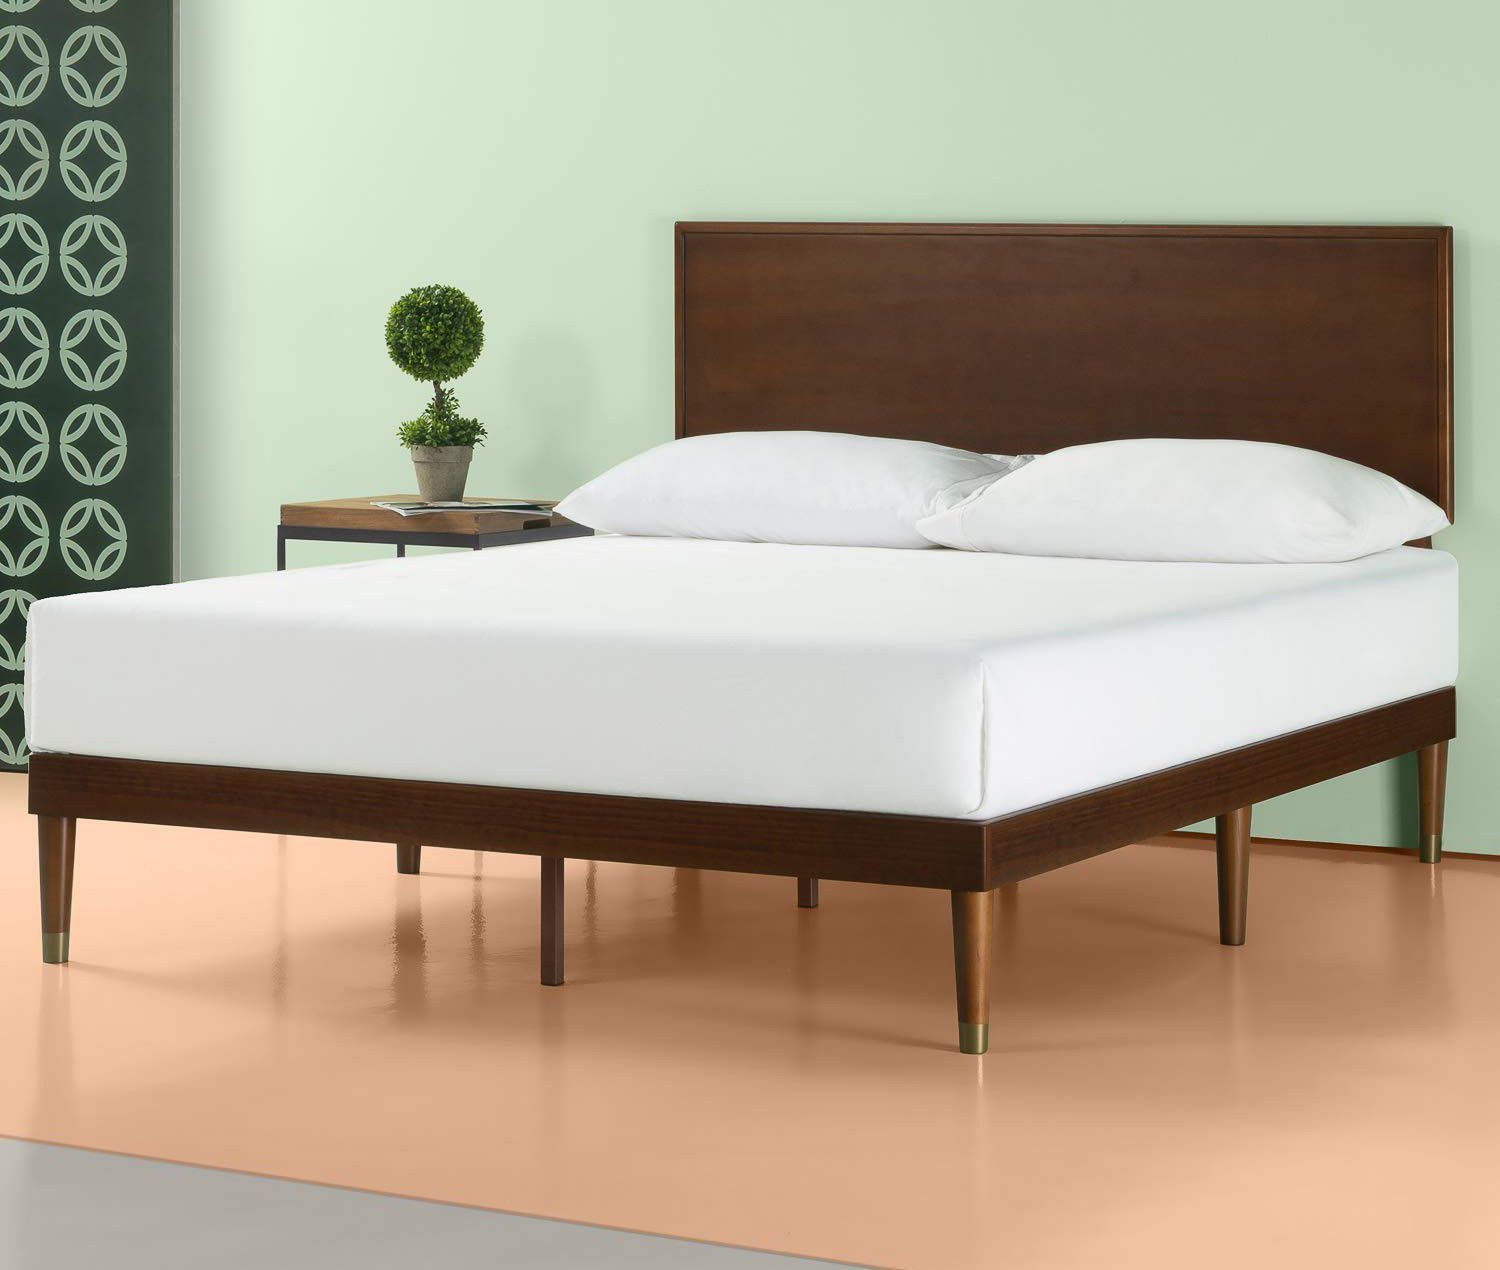 Get A West Elm Look For Under 300 With This Mid Century Bed